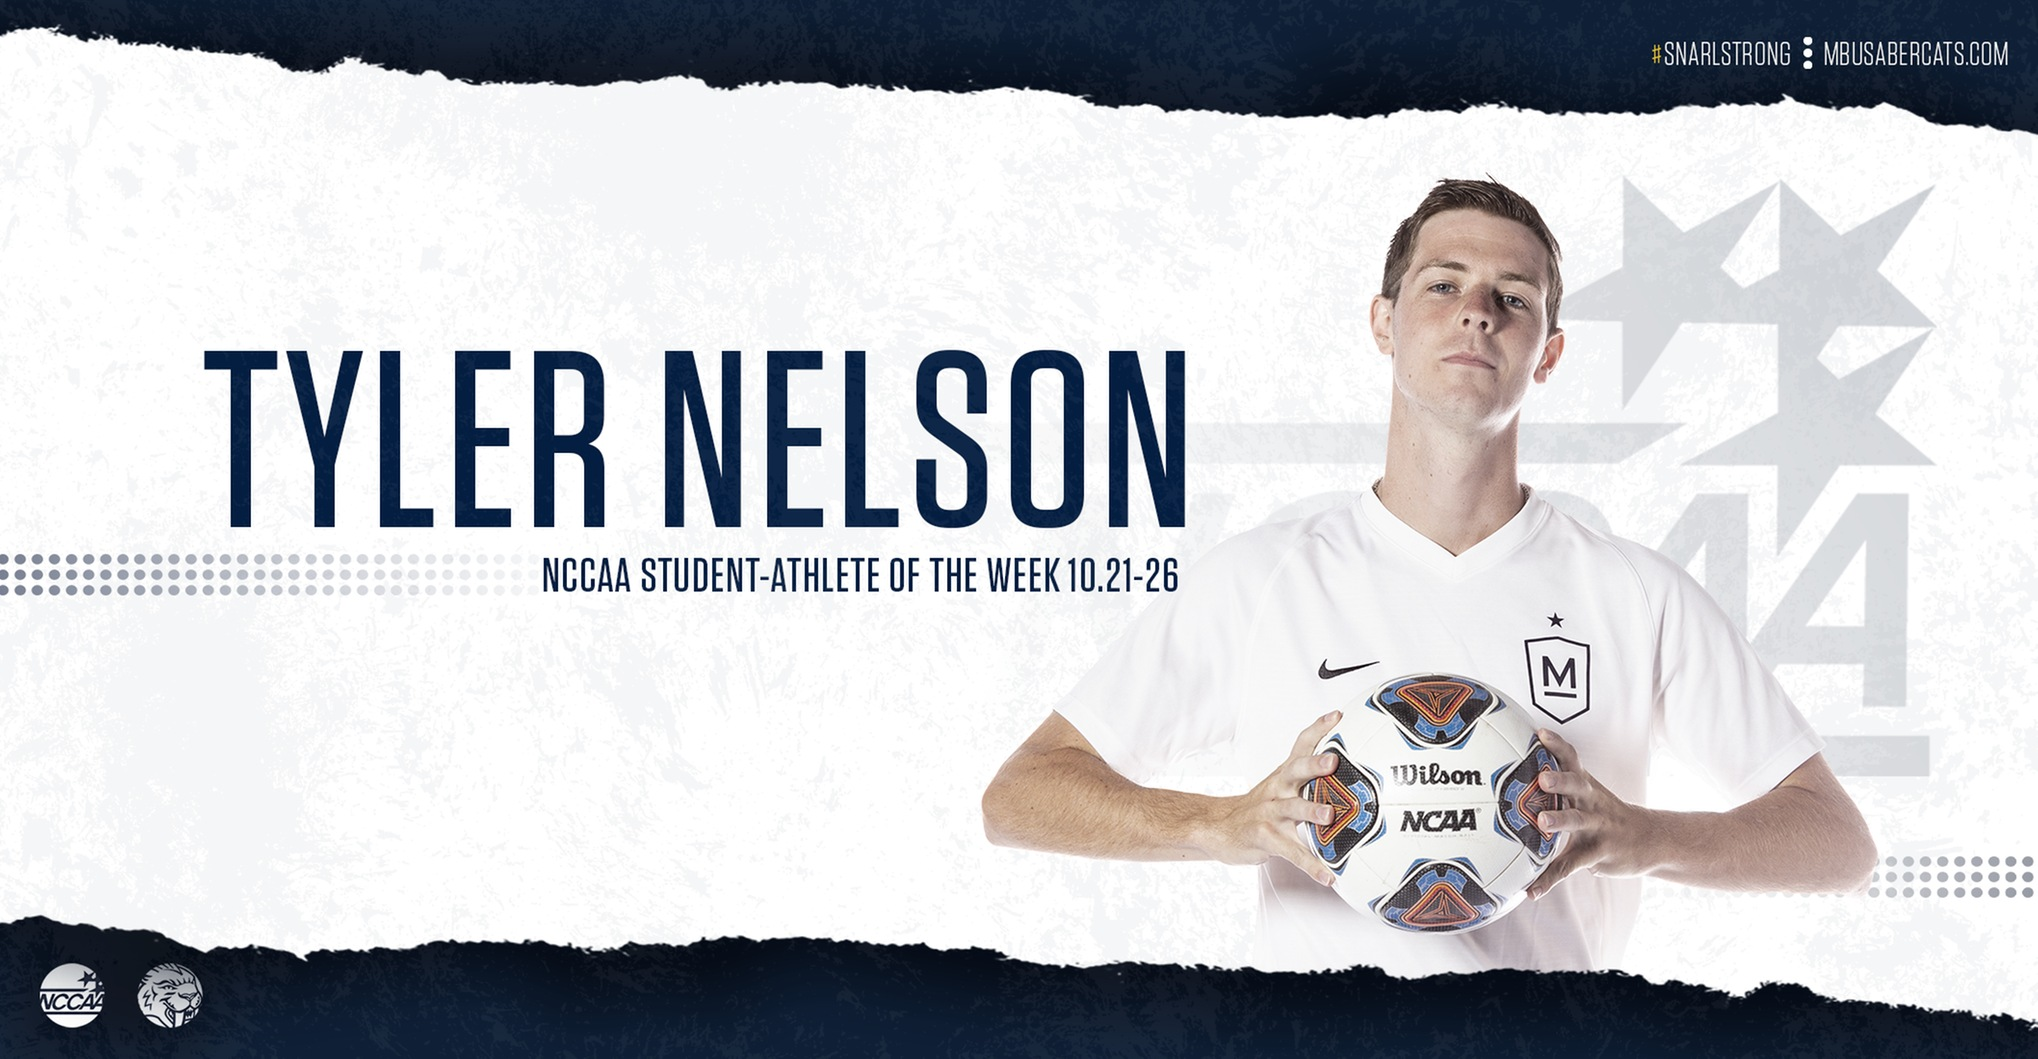 Nelson Gets the Nod